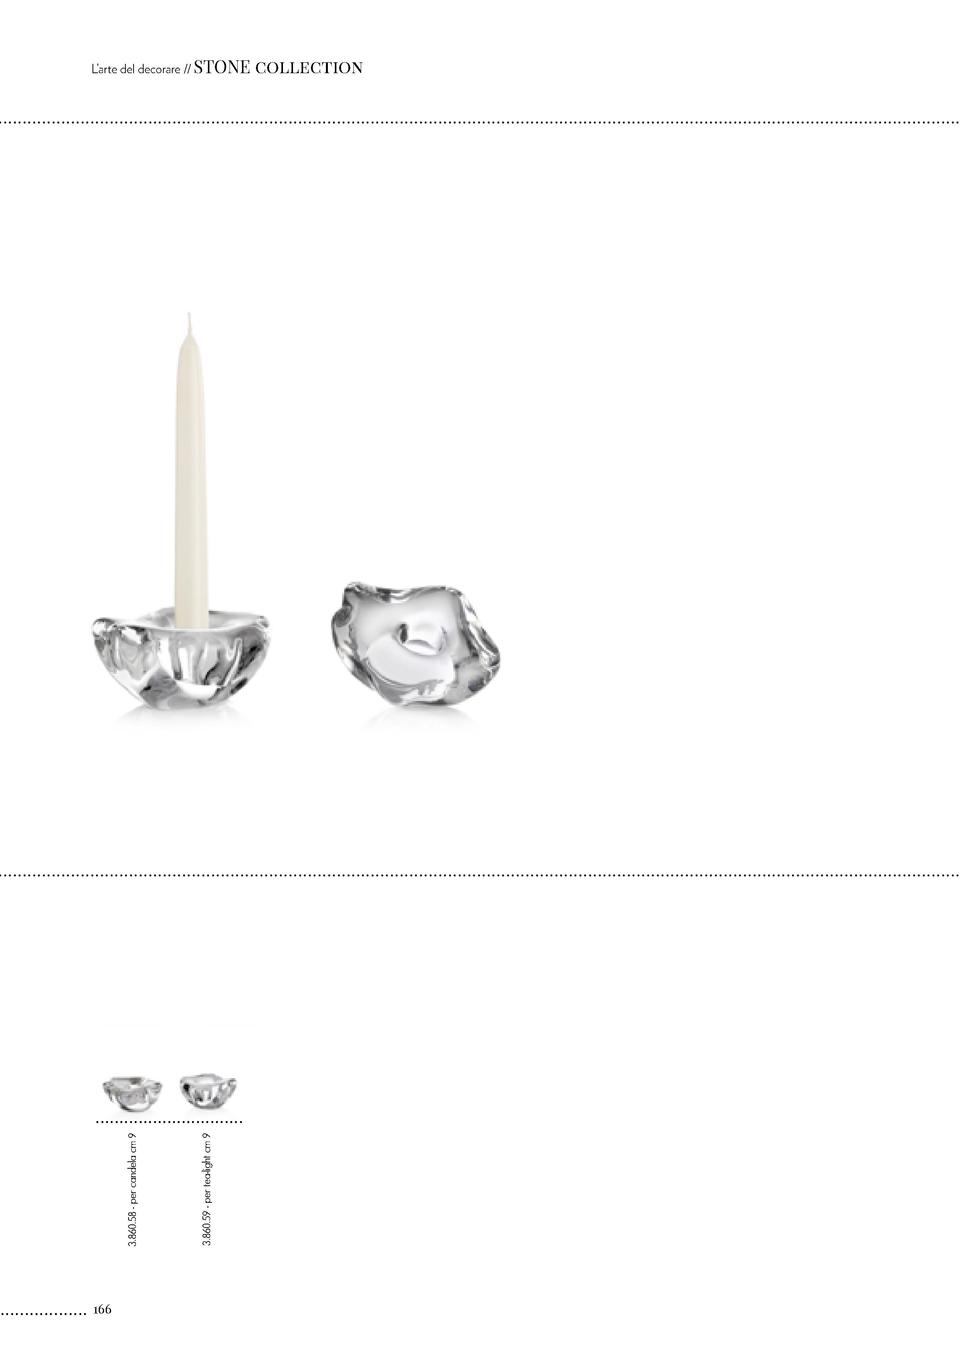 166  3.860.59 - per tea-light cm 9  3.860.58 - per candela cm 9  L   arte del decorare    STONE  collection